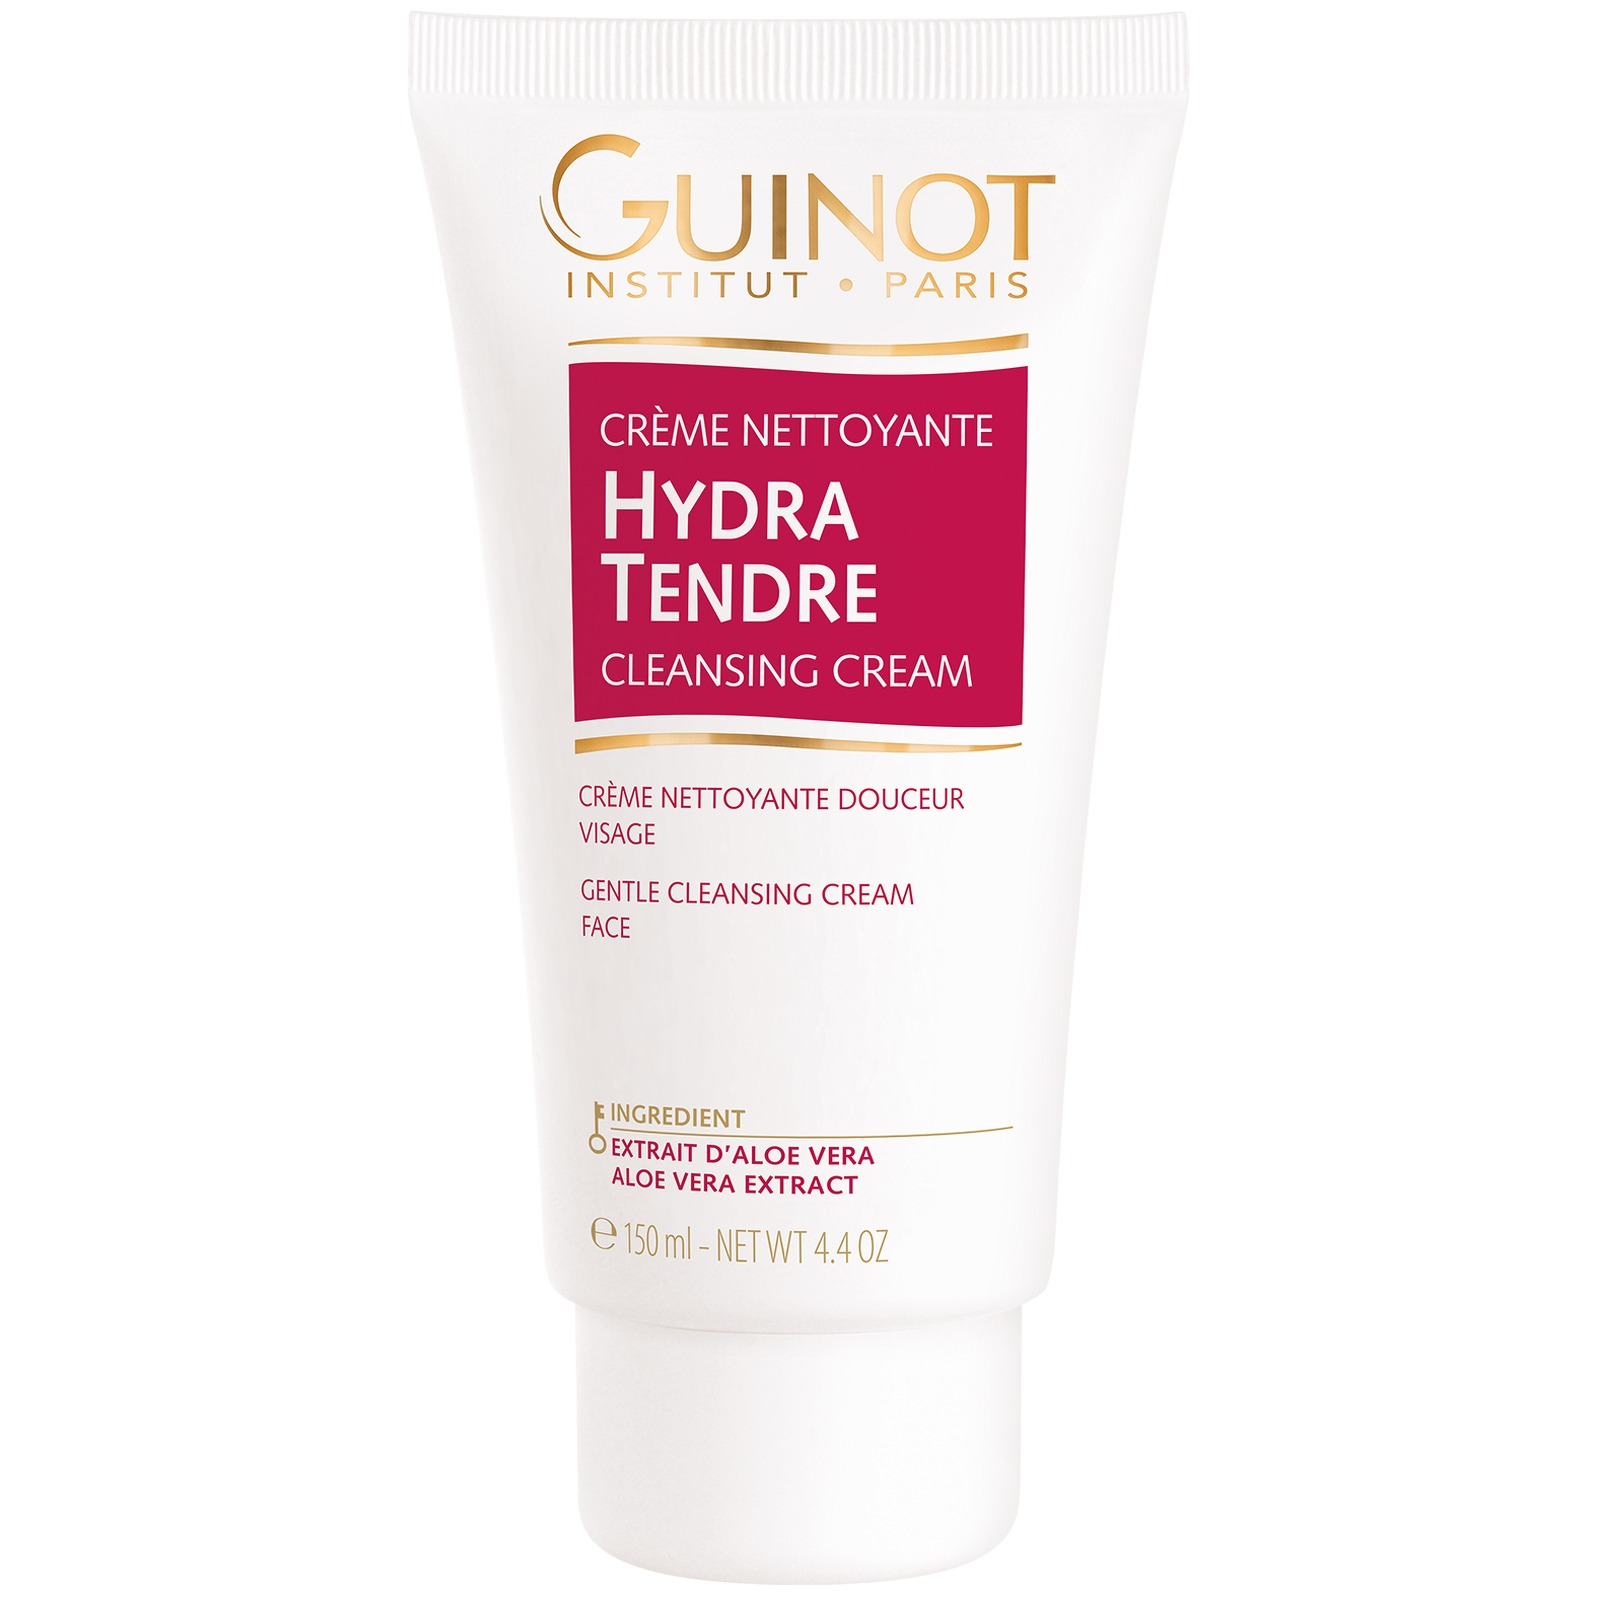 Guinot Make-Up Removal / Cleansing Hydra Tendre Cleansing Cream 150ml / 4.4 oz.